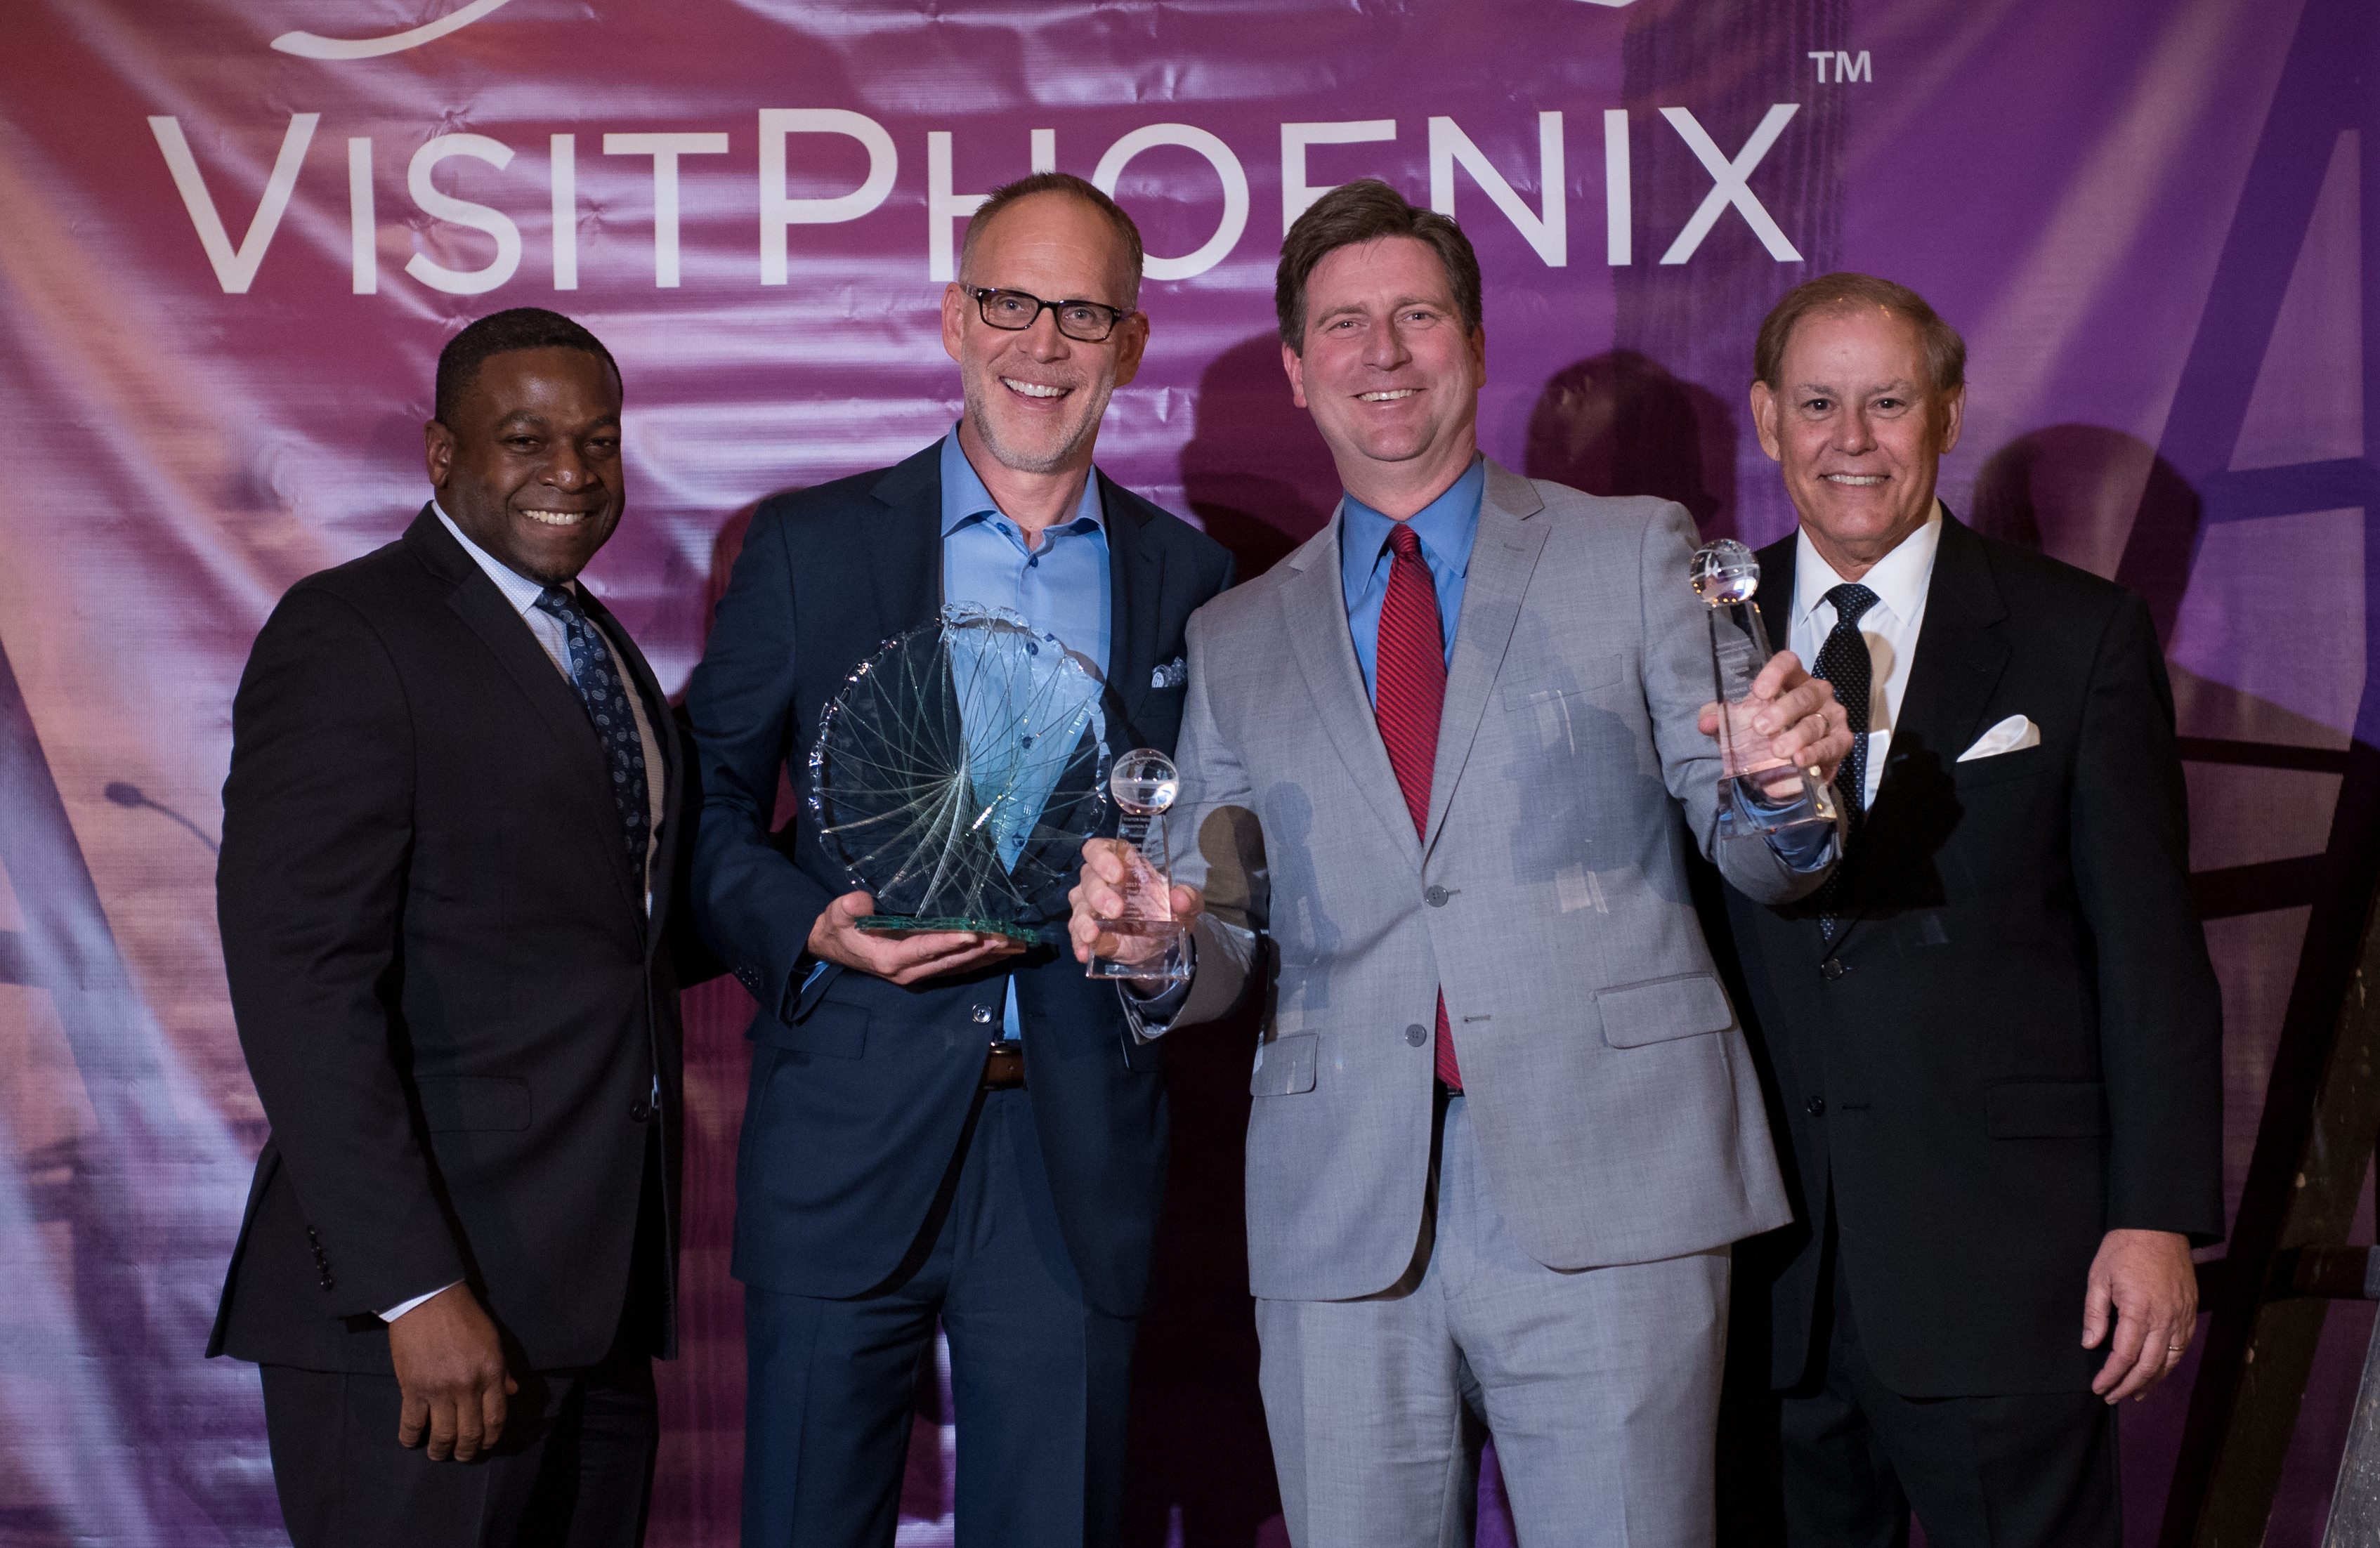 Roger Helms accepted the Visitor Industry Champion Award on behalf of the HelmsBriscoe team.